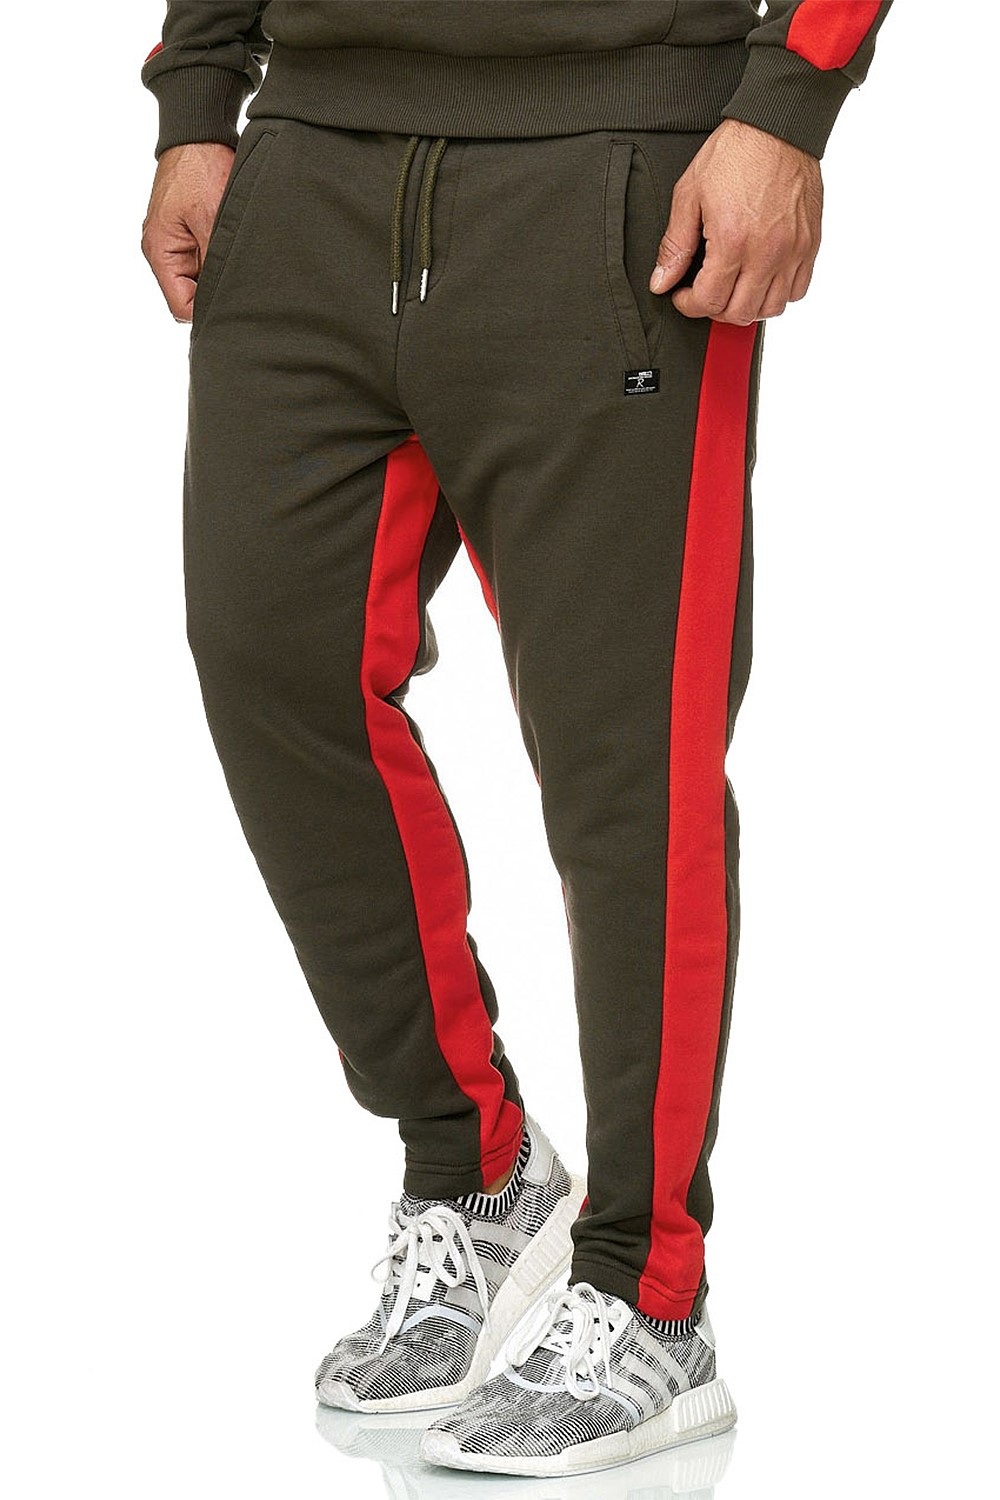 Redbridge-senores-regular-fit-chandal-fitness-sueter-aerobic-pantalones miniatura 10